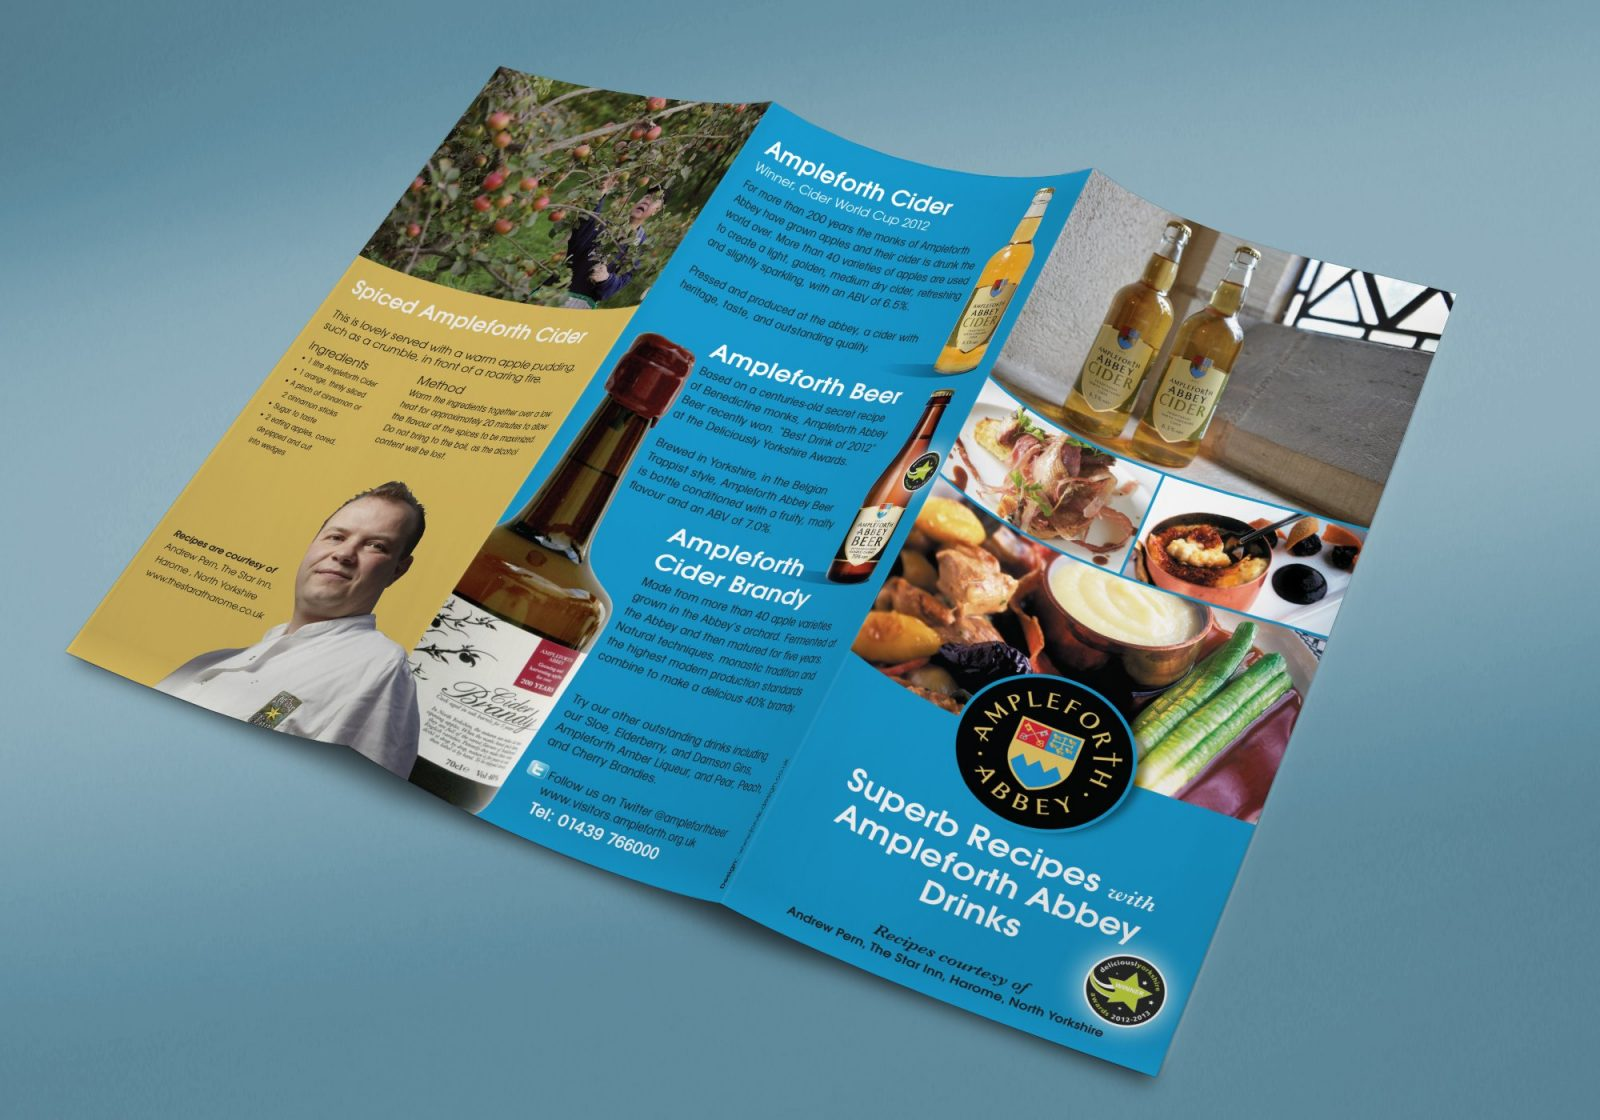 An A4 folded leaflet design for Ampleforth Abbey Drinks recipes